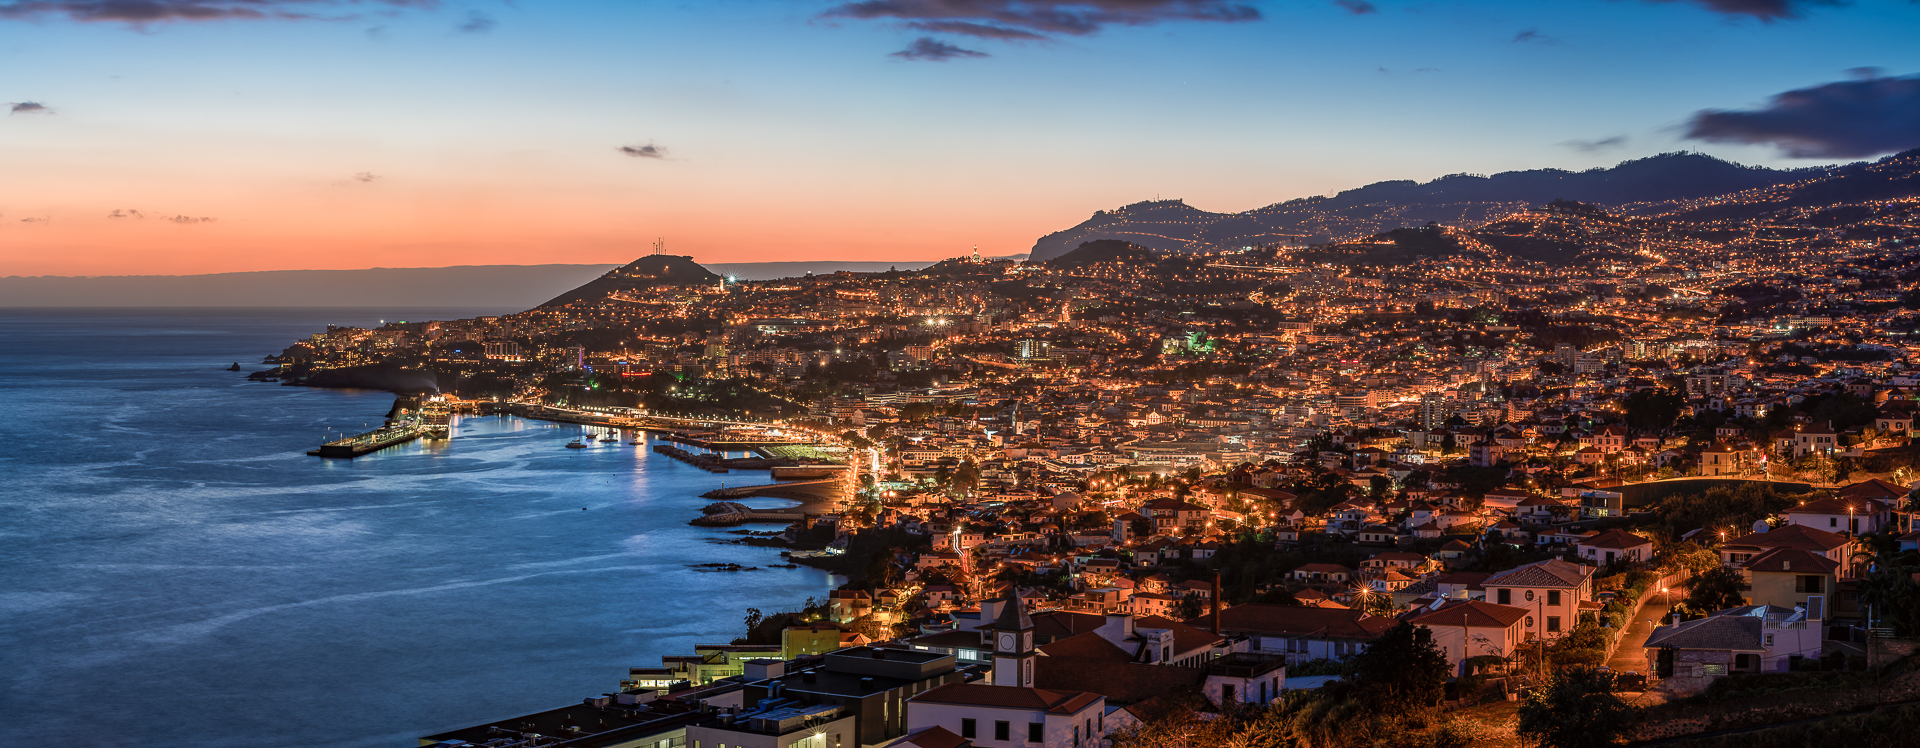 Madeira Island Portugal  City pictures : Madeira Island, Funchal, Panorama, Portugal, 2015